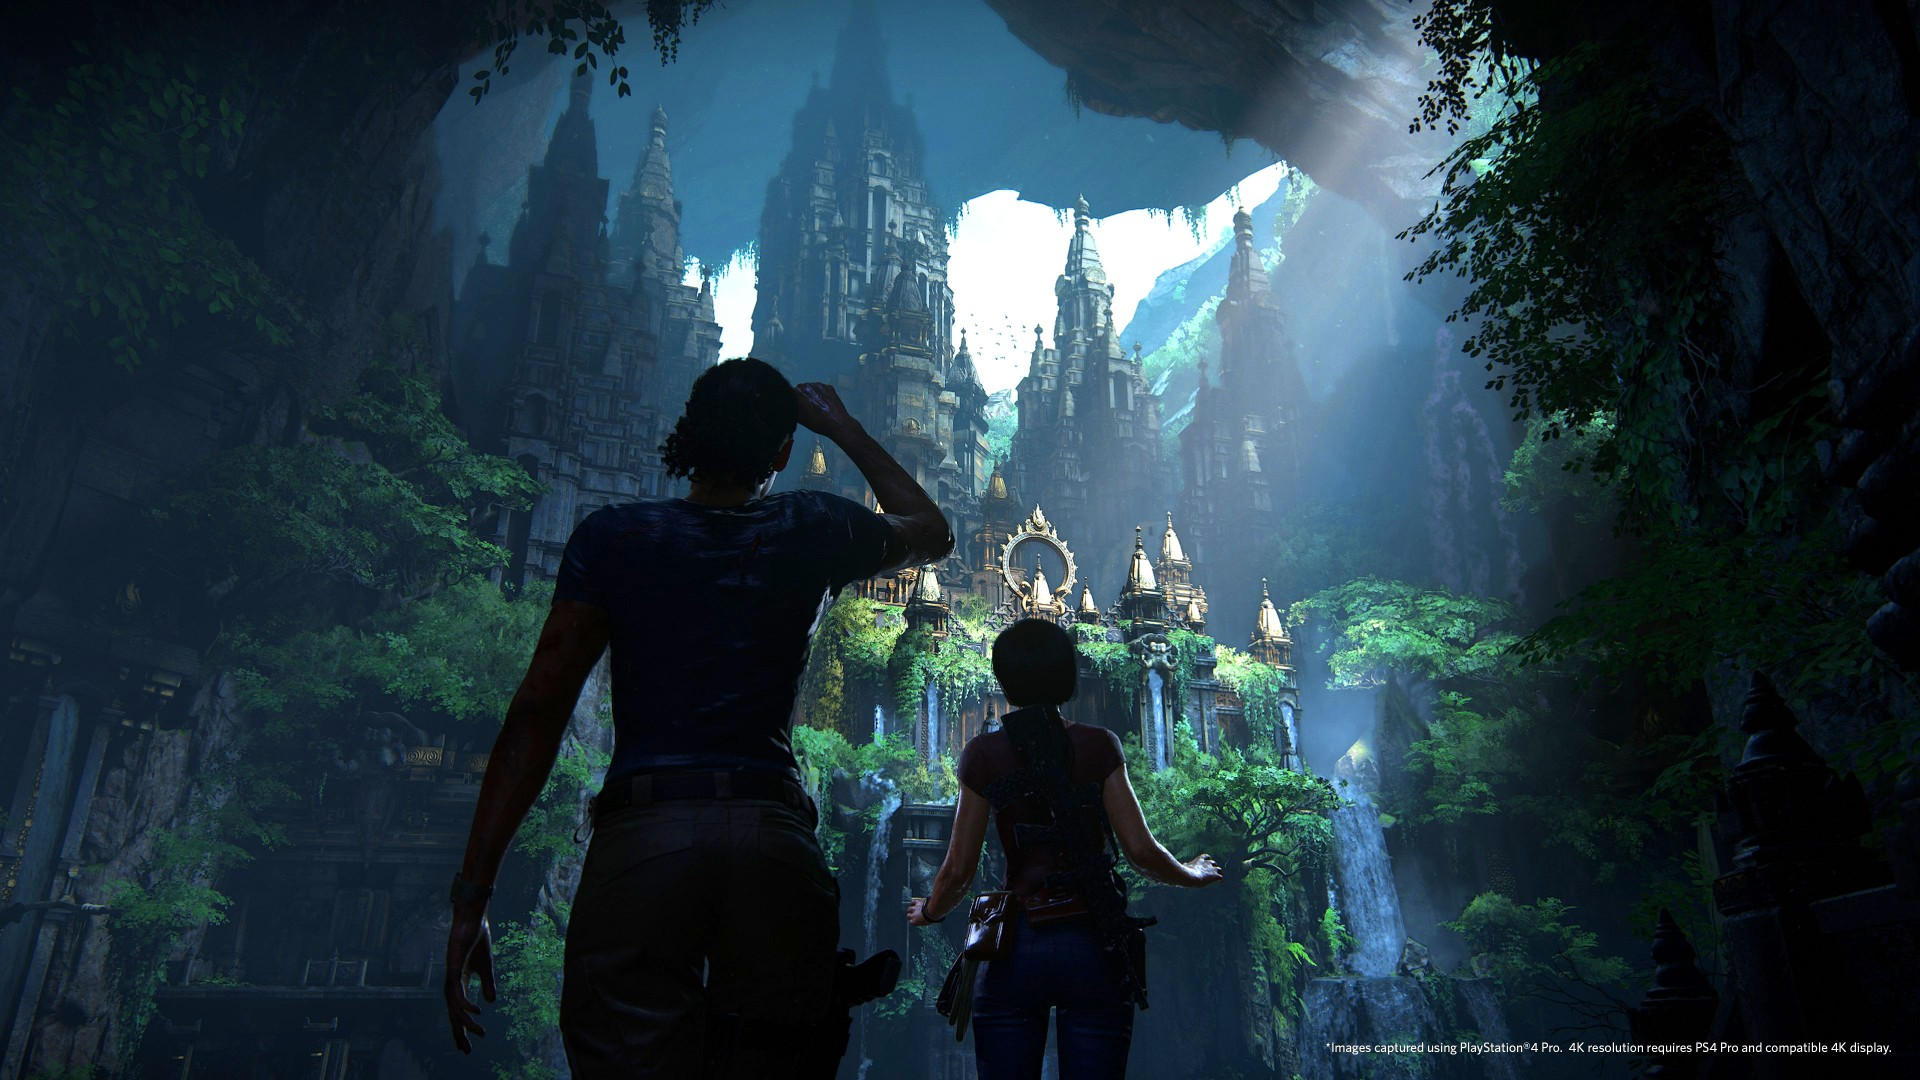 Uncharted The Lost Legacy 4K PS4 Pro Wallpapers | HD Wallpapers | ID #20642